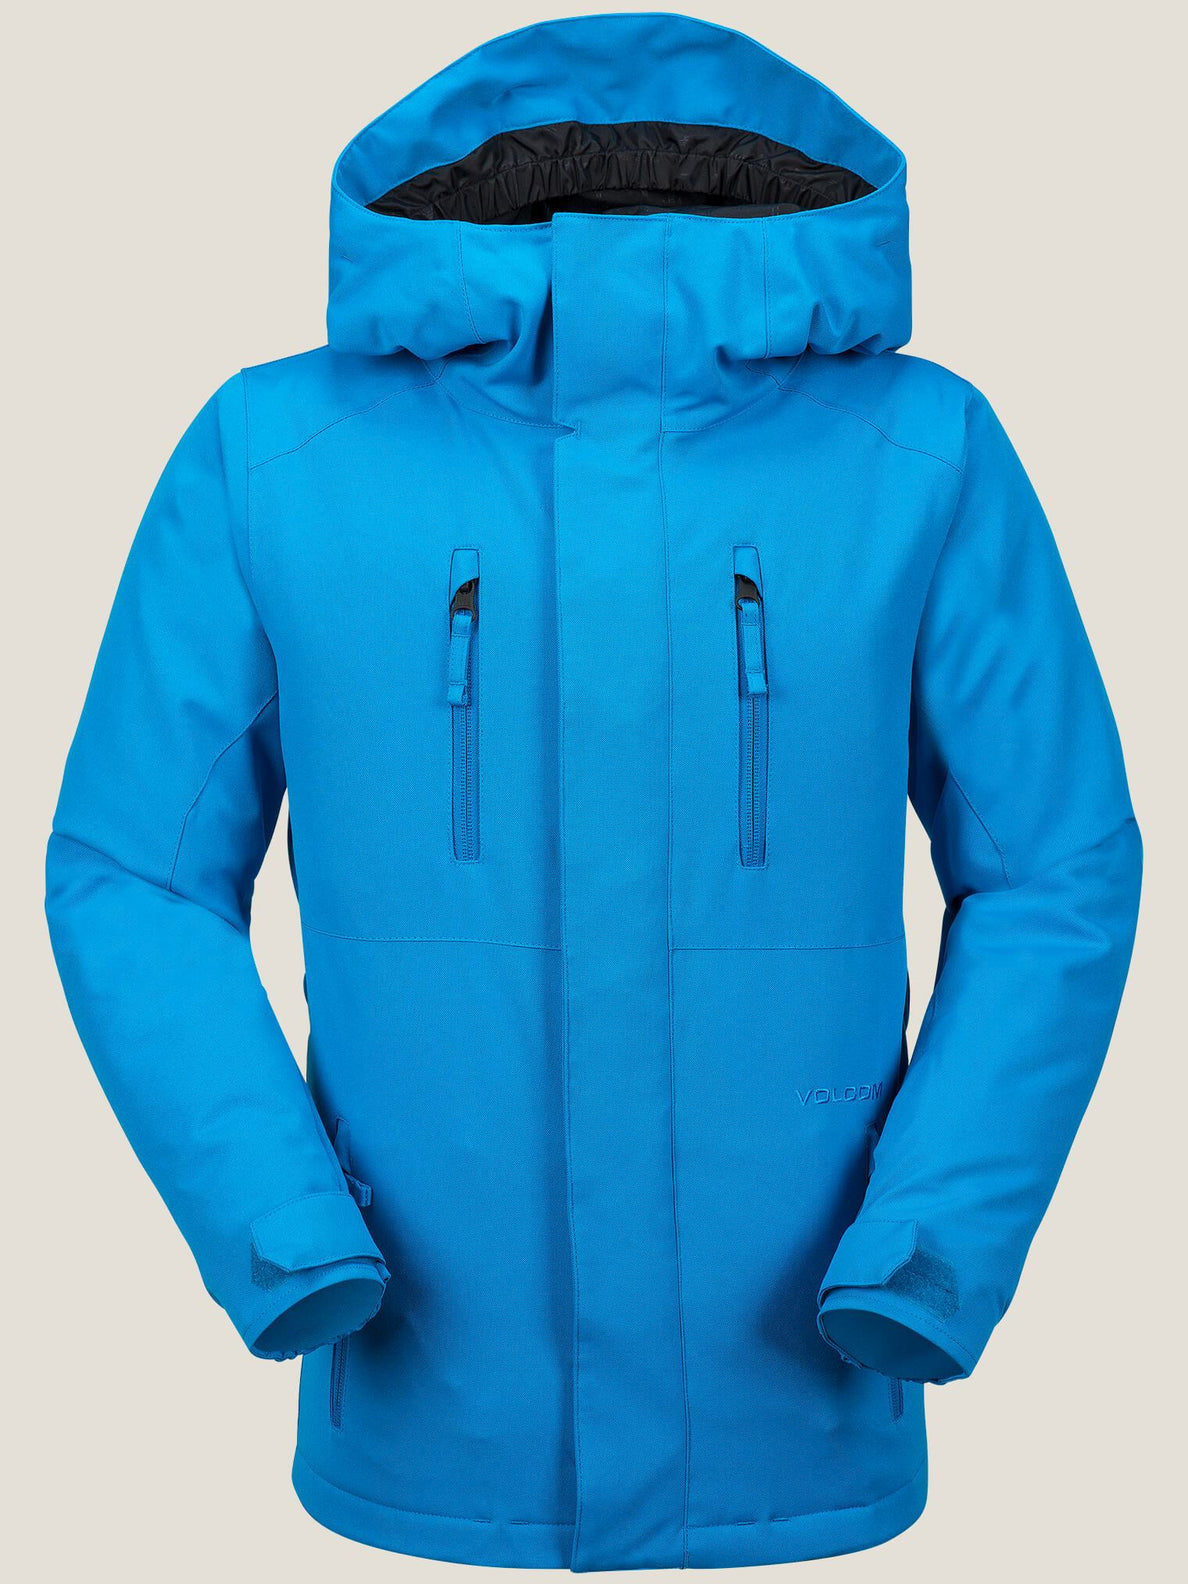 Garibaldi Insulated Jacket In Blue, Front View